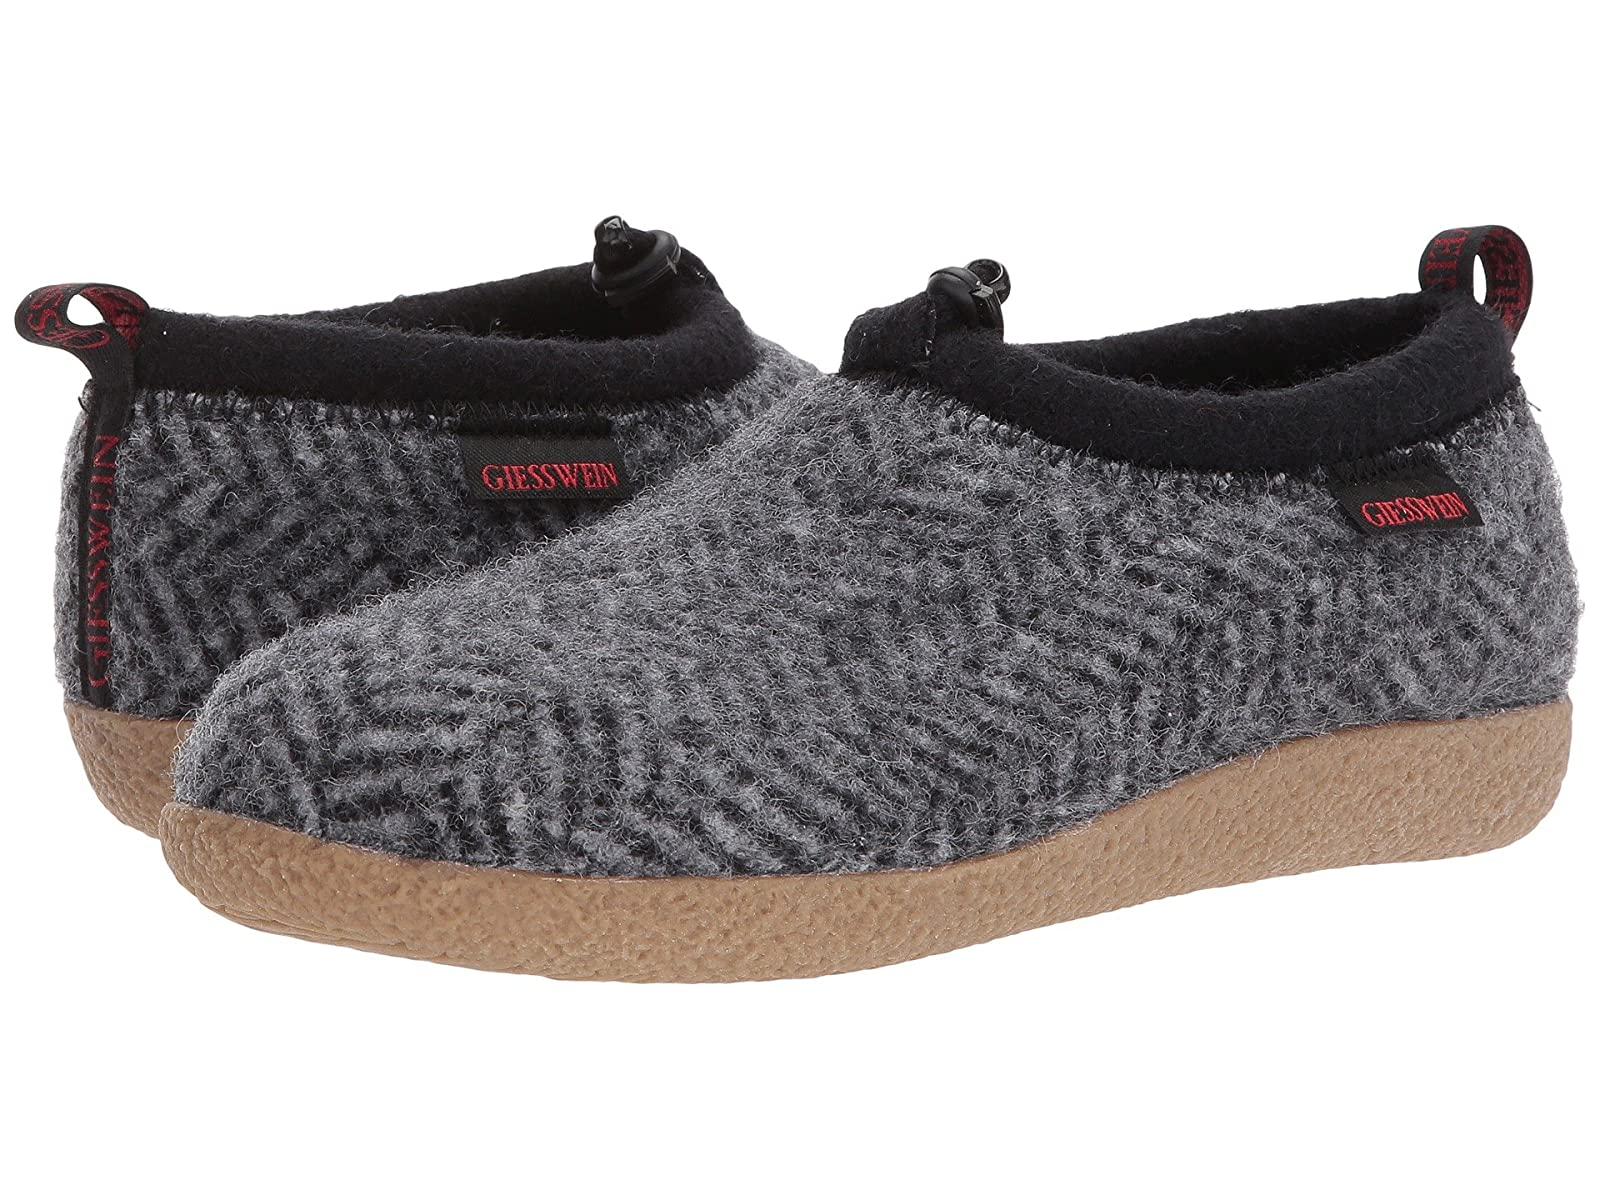 Giesswein TahoeAtmospheric grades have affordable shoes